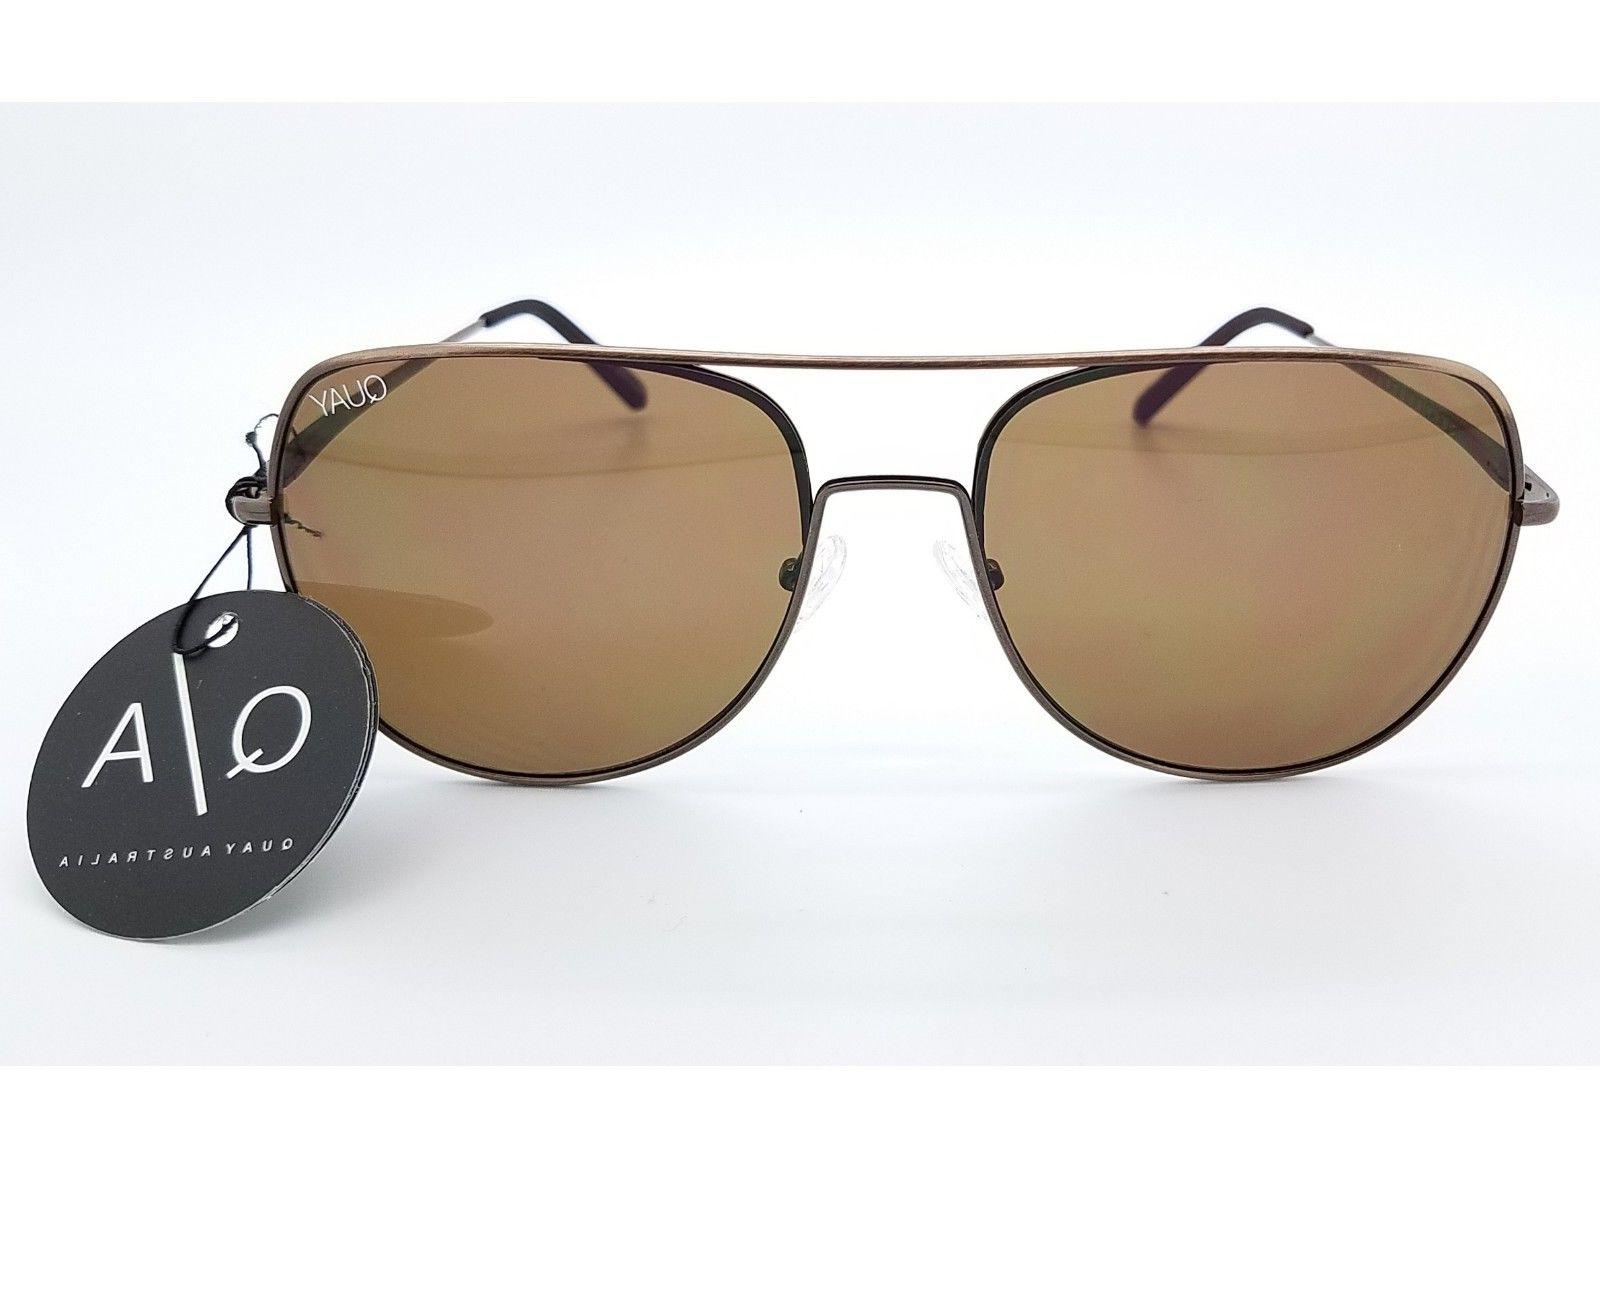 NEW Quay sunglasses Living Large Bronze Brown Square Aviator